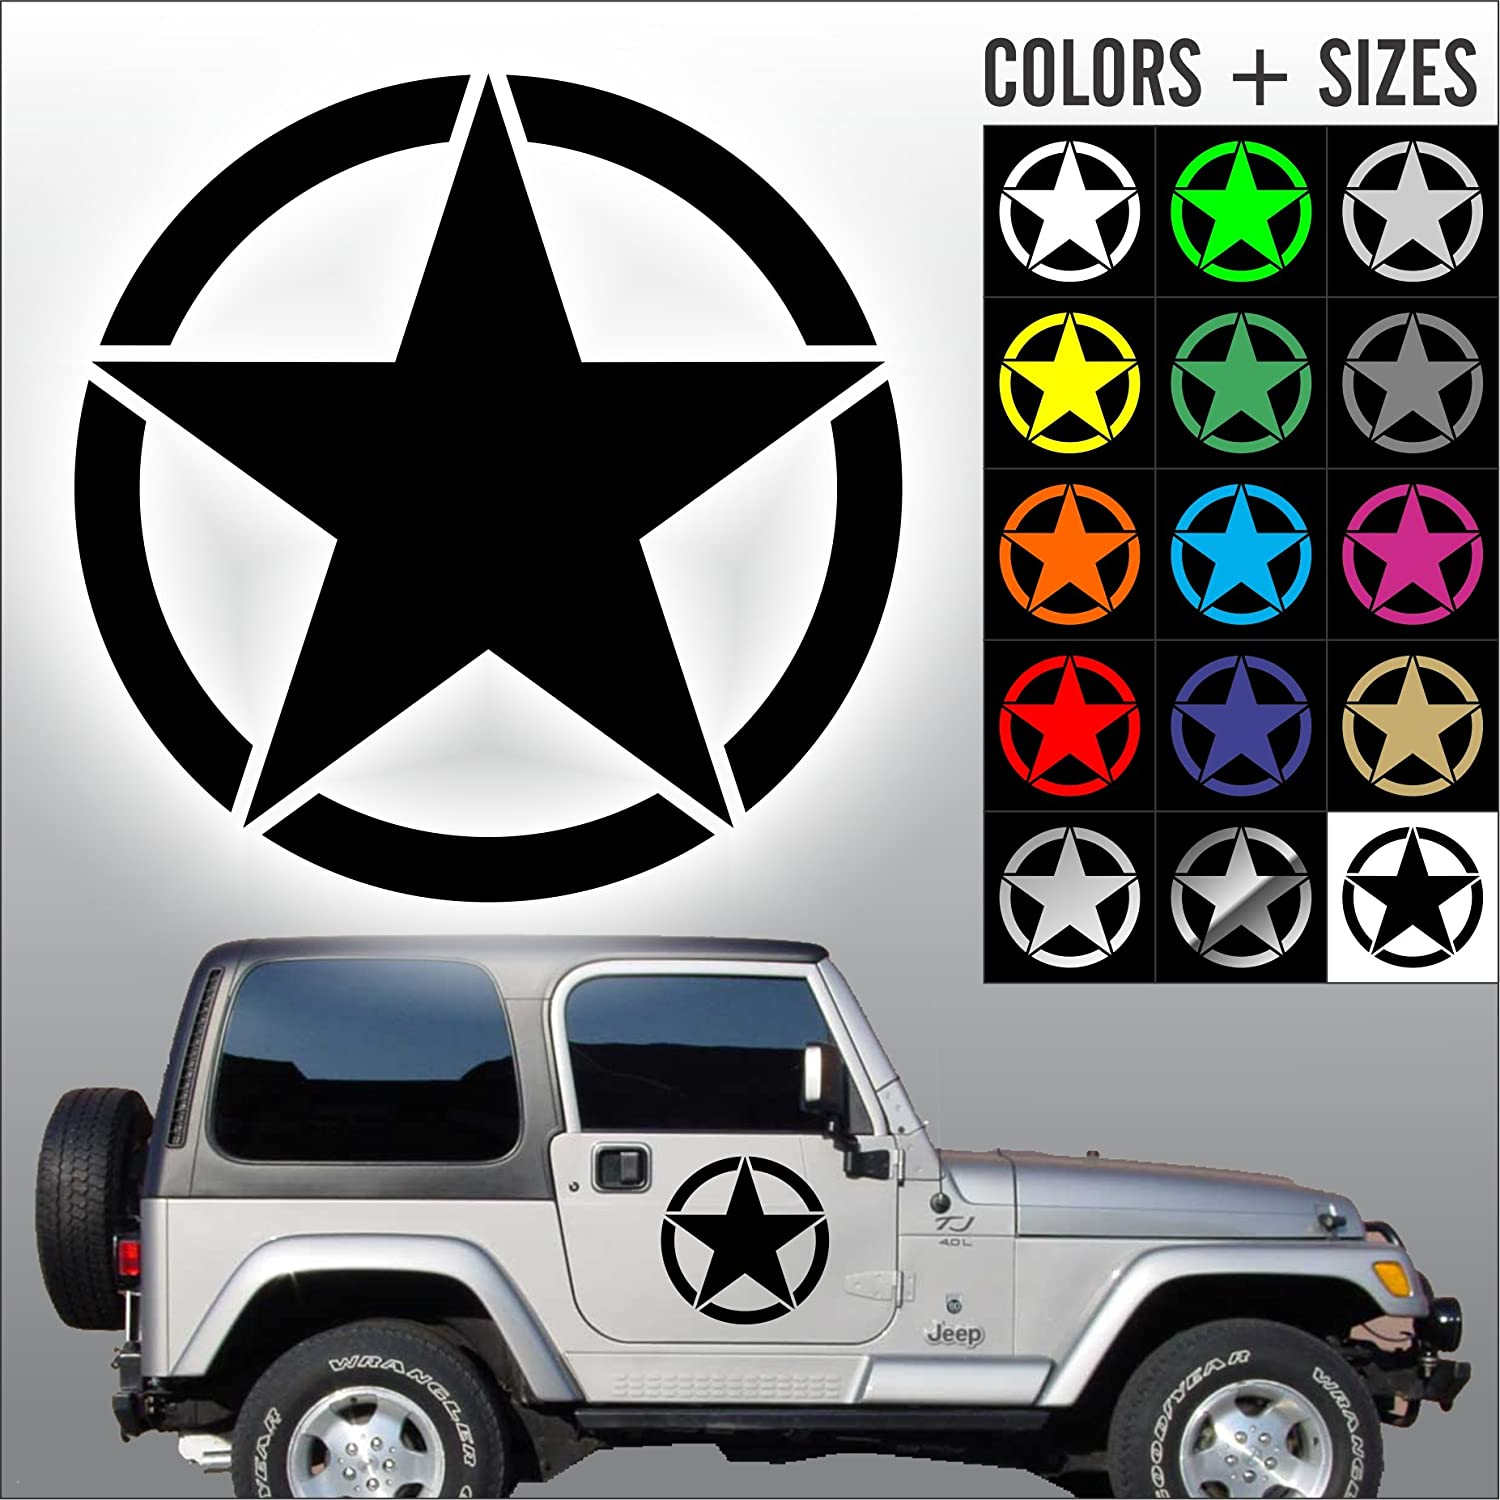 Amazon com army star decal jeep usmc military willys car decal sticker sizes and colors die cut no background 16 black automotive